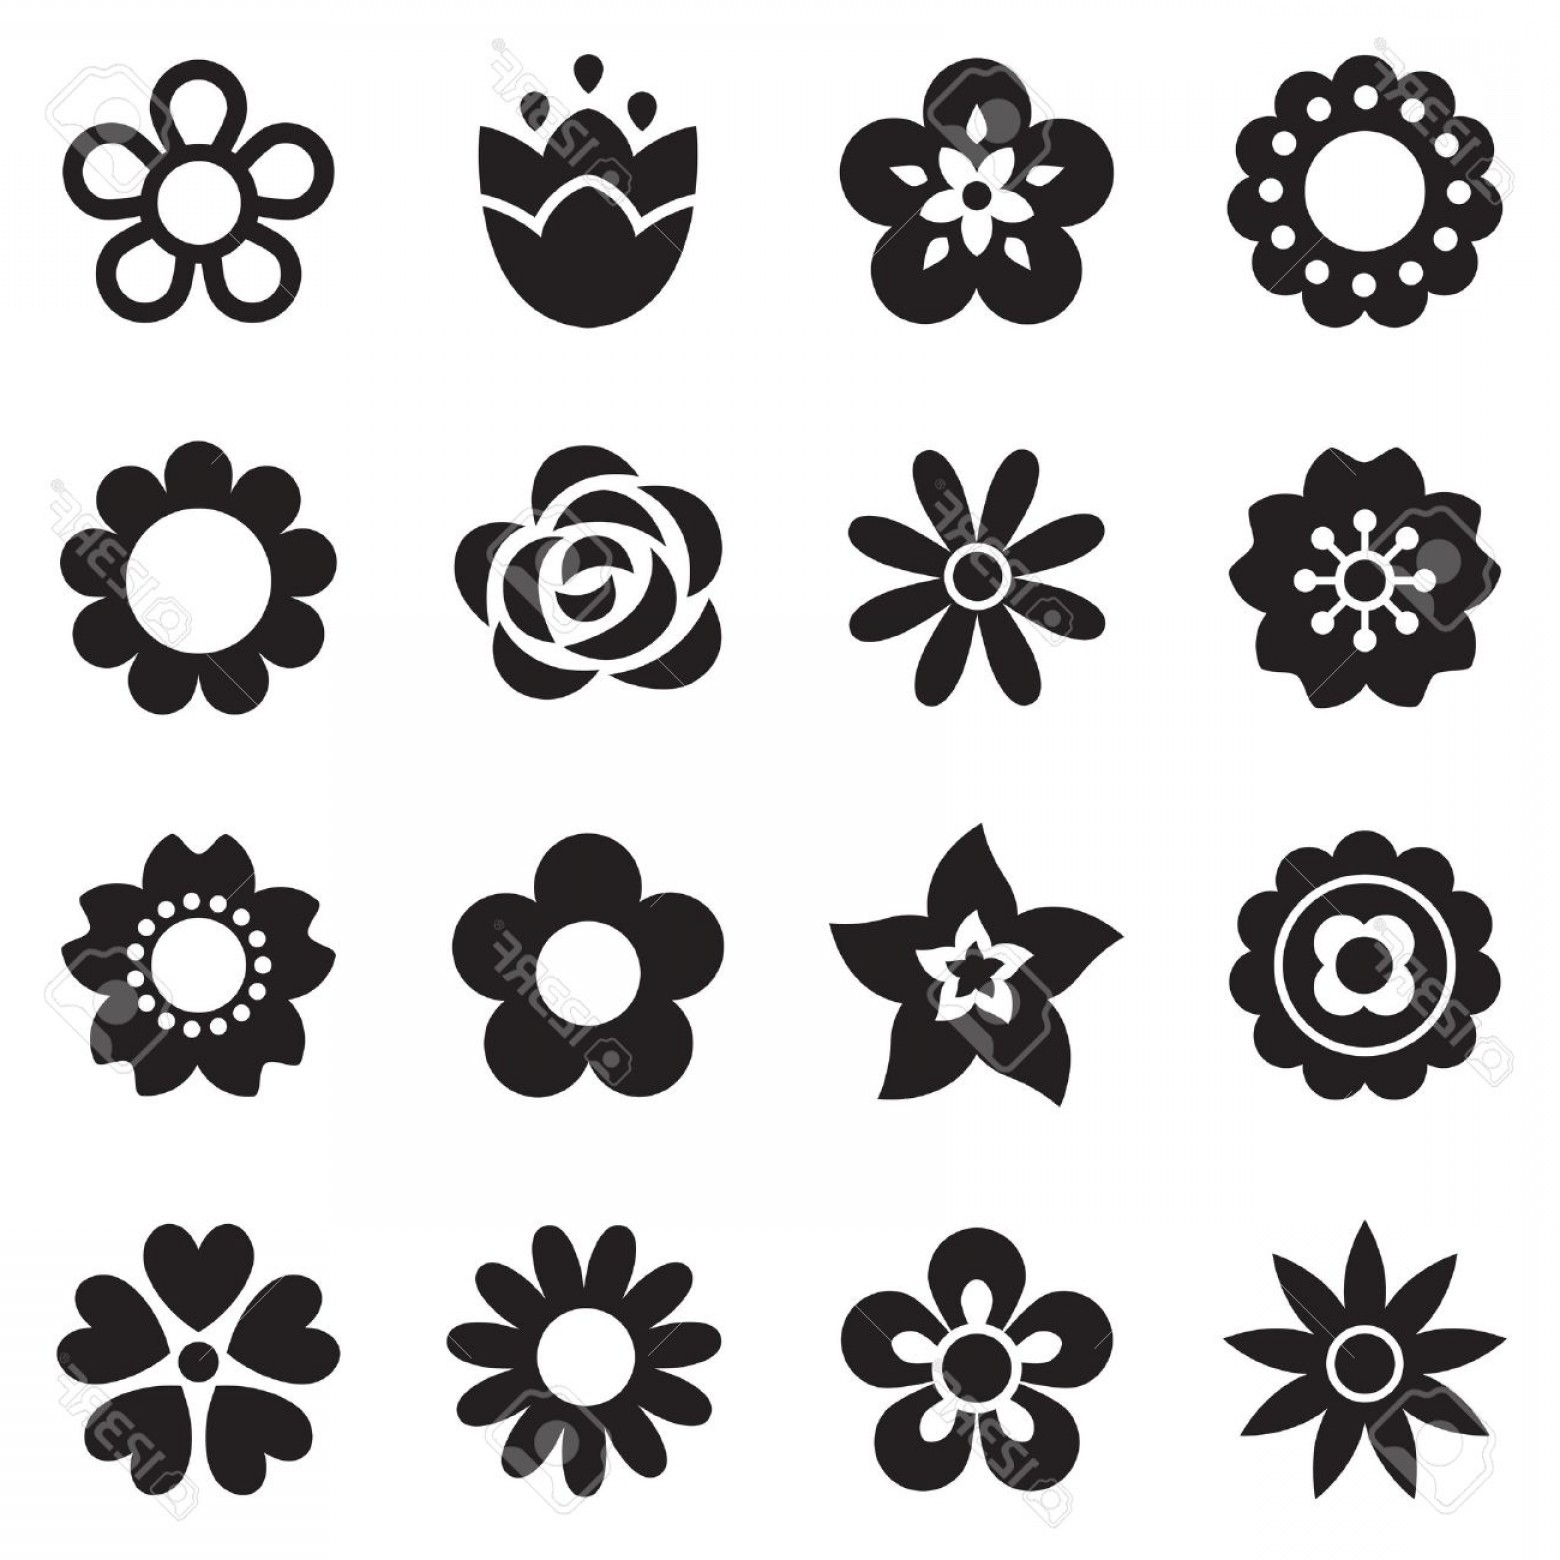 Icon Of Flower Vectors: Photostock Vector Set Of Flat Flower Icons In Silhouette Isolated On White Simple Retro Designs In Black And White Sea